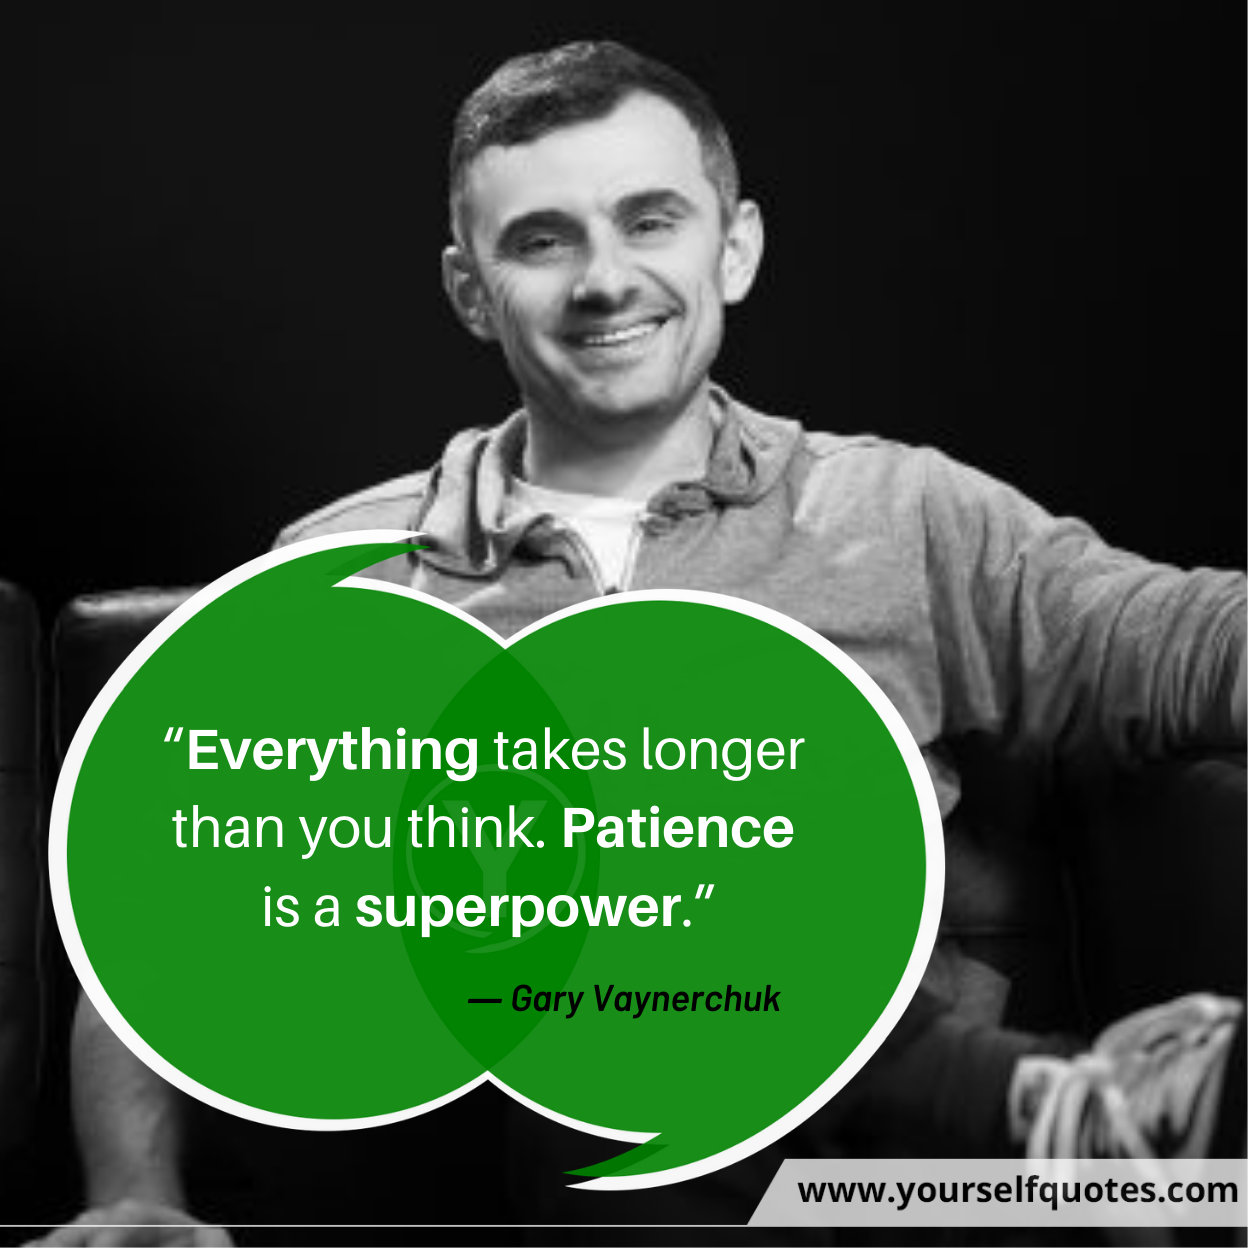 Motivational Quotes by Gary Vaynerchuk